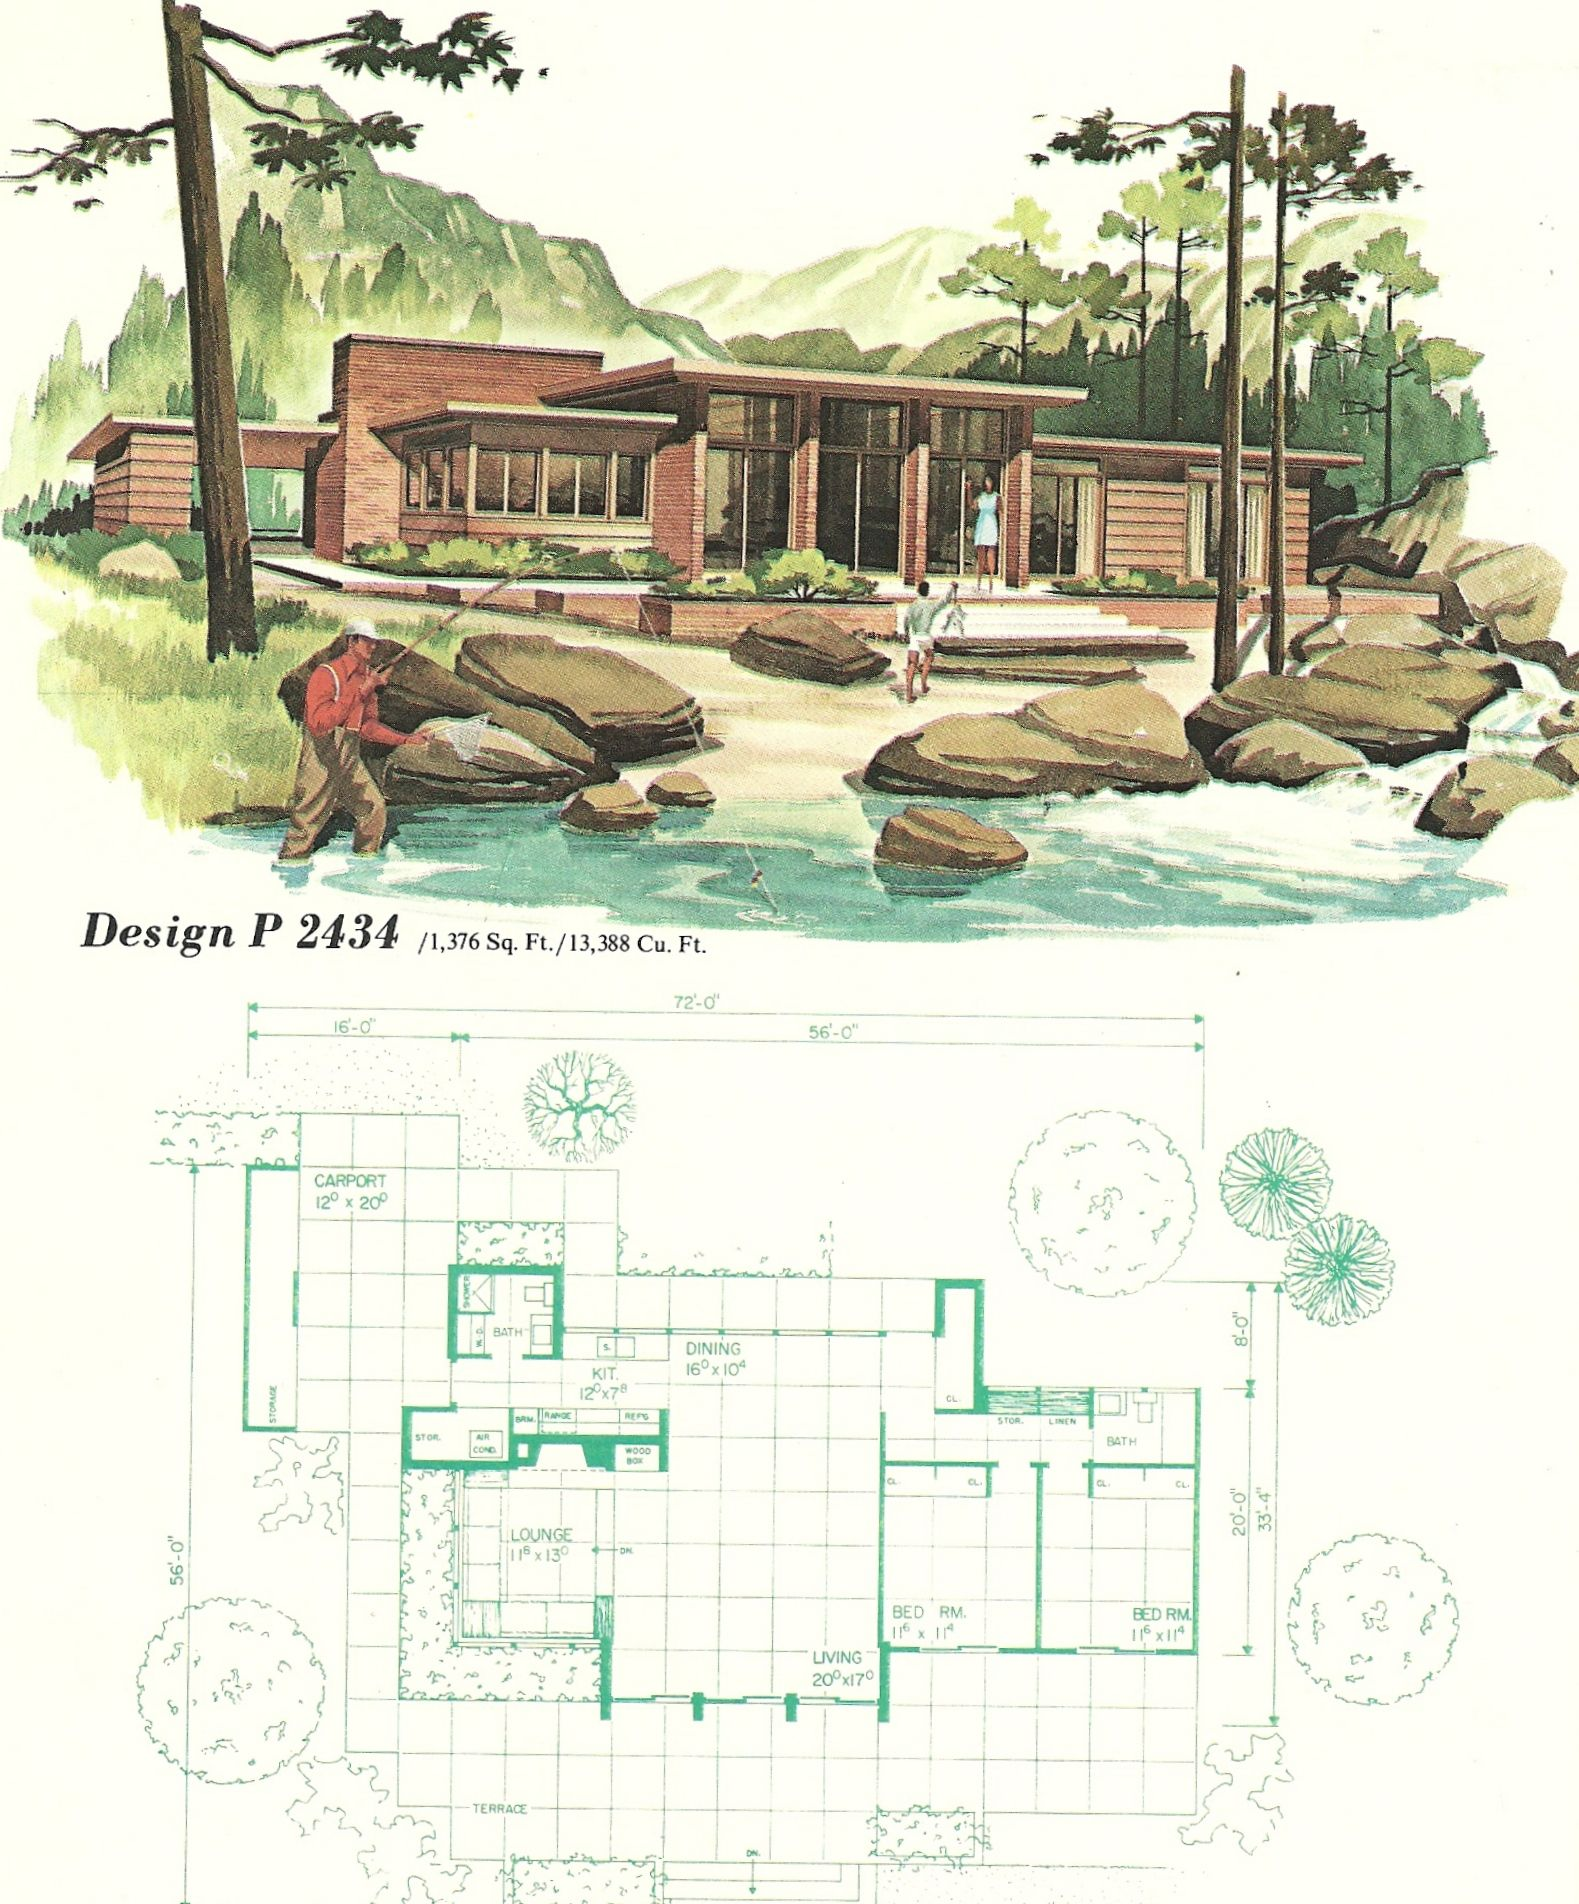 Vintage House Plans, vacation homes, 1960s | Mid century ...